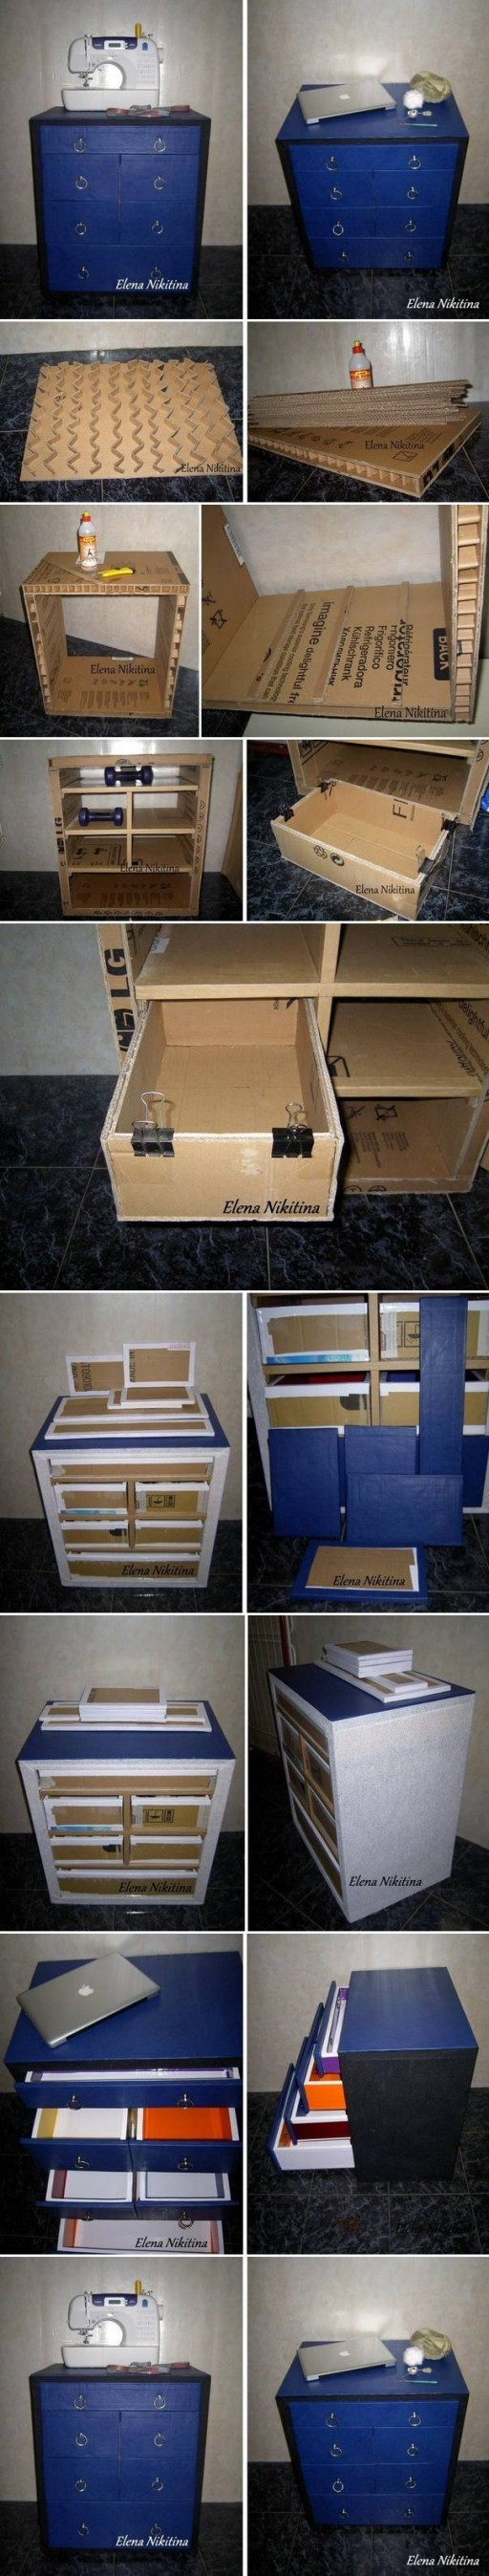 How to make Cardboard Chest with Drawers storage units step by step DIY tutorial instructions